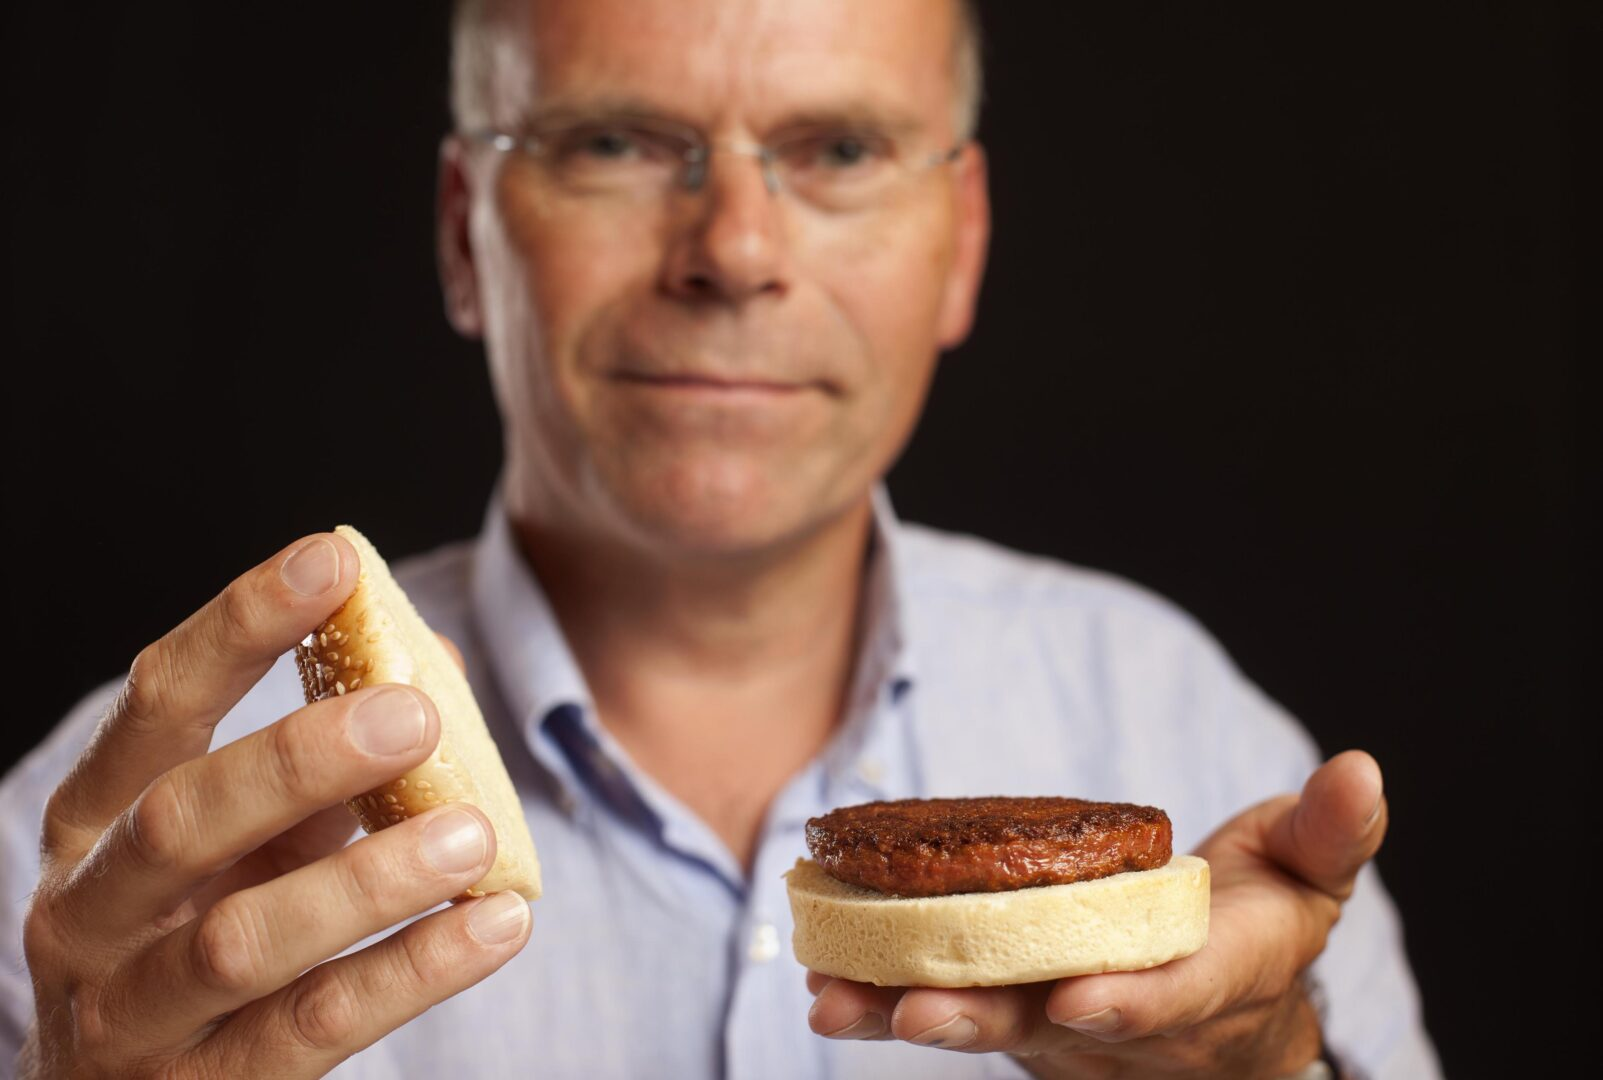 The world's first cultivated meat proof of concept was developed and unveiled by professor mark post in 2013.